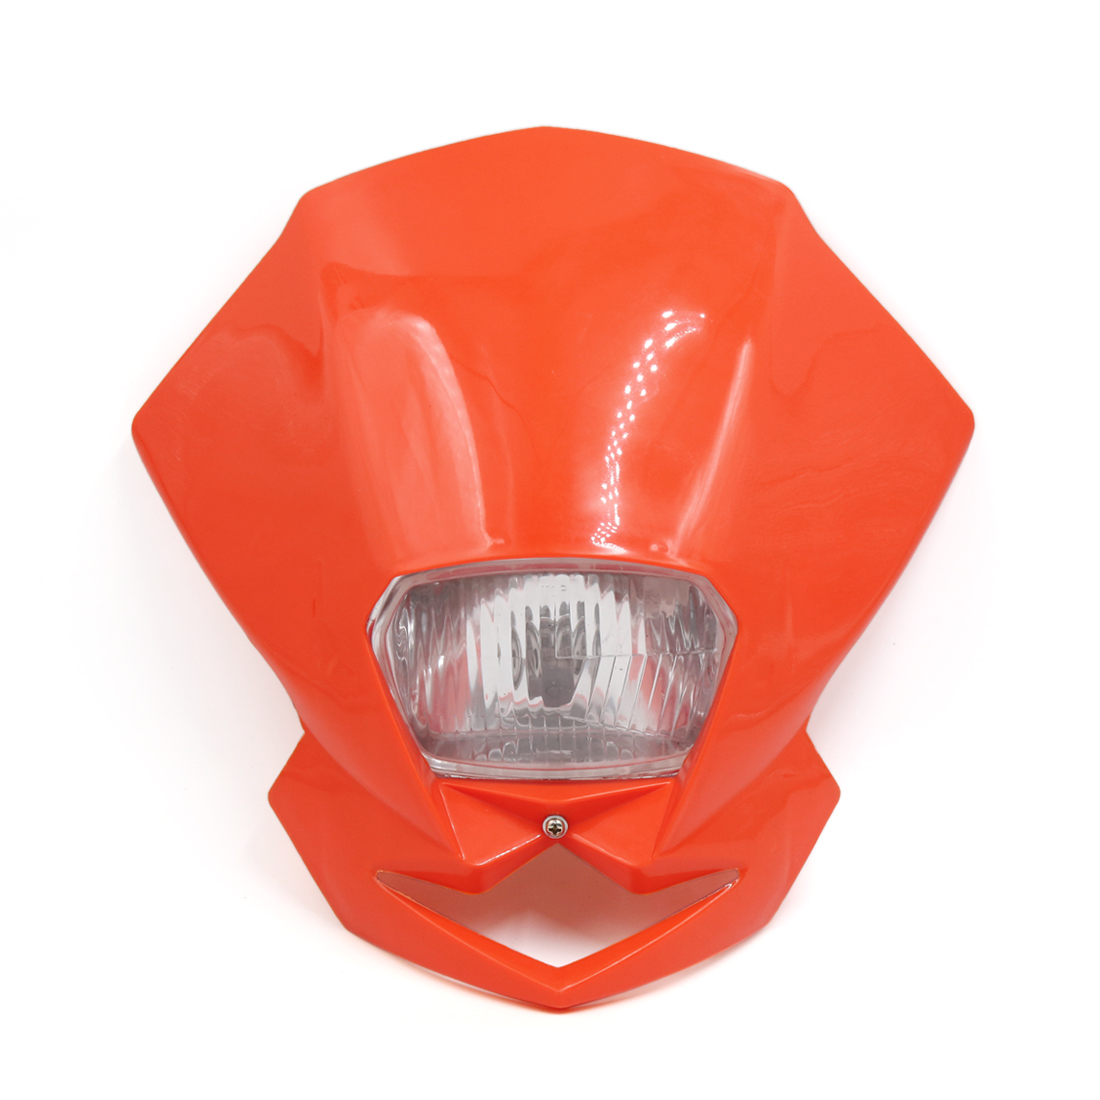 Orange Shell Motorcycle Streetfighter Warm White Headlight Head Lamp Fairing